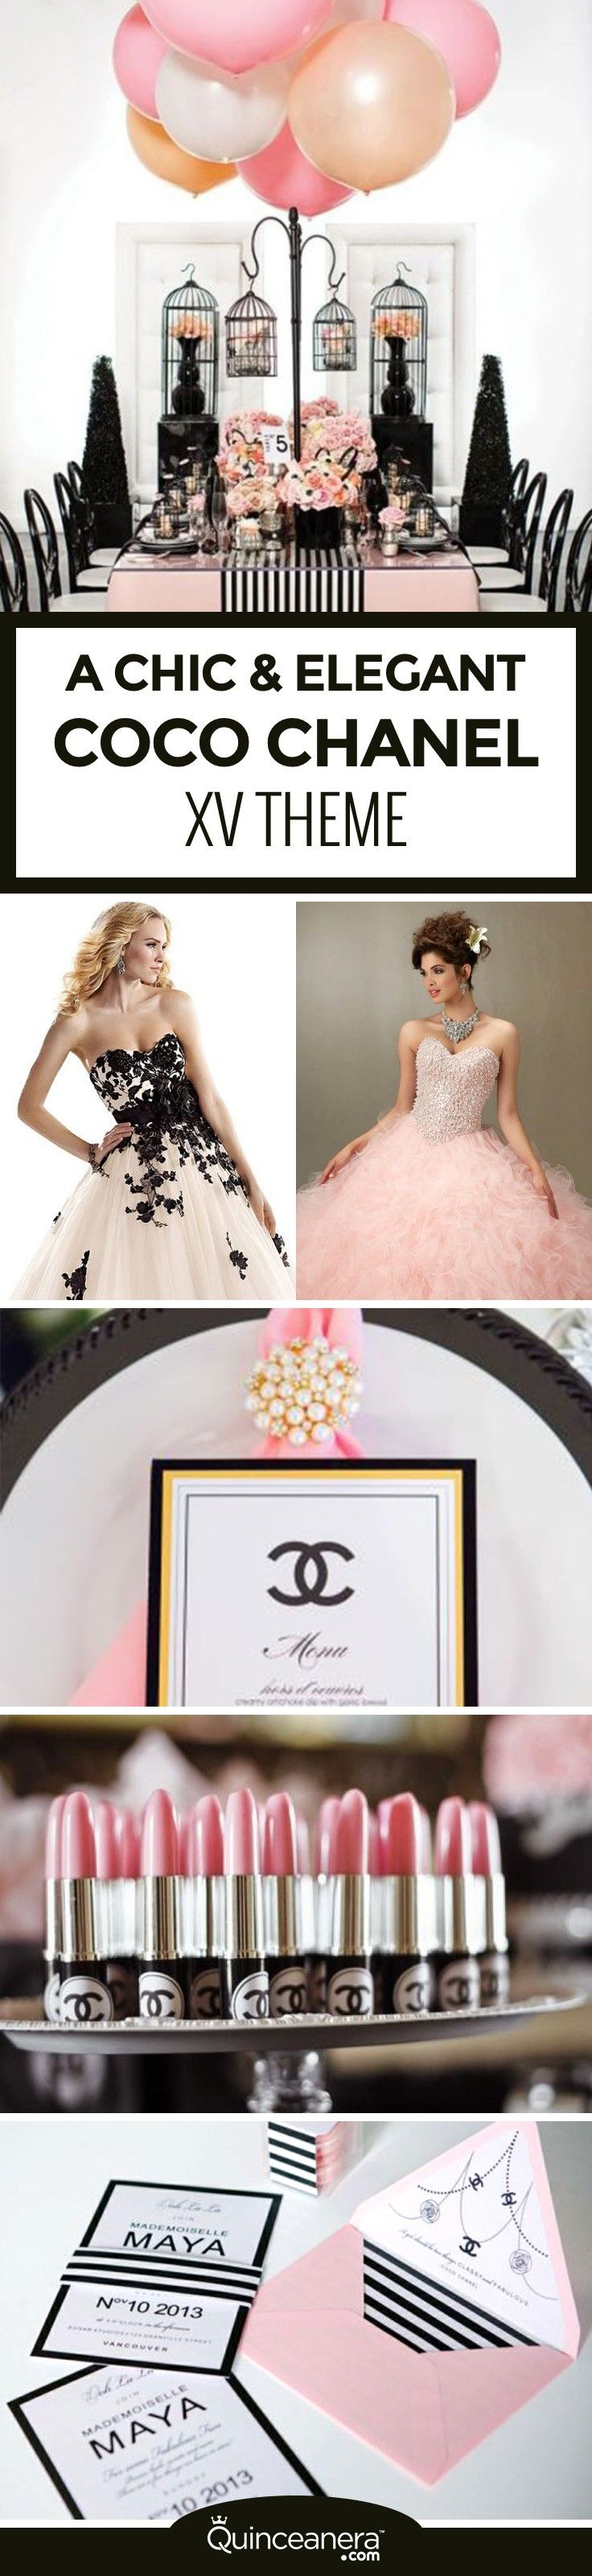 Take a look at the galleries we prepared for you to plan the best Coco Chanel Quinceanera theme of the year! - See more at: http://www.quinceanera.com/decorations-themes/coco-chanel-quinceanera-theme/?utm_source=pinterest&utm_medium=social&utm_campaign=article-012616-decorations-themes-coco-chanel-quinceanera-theme#sthash.hABuo69L.dpuf